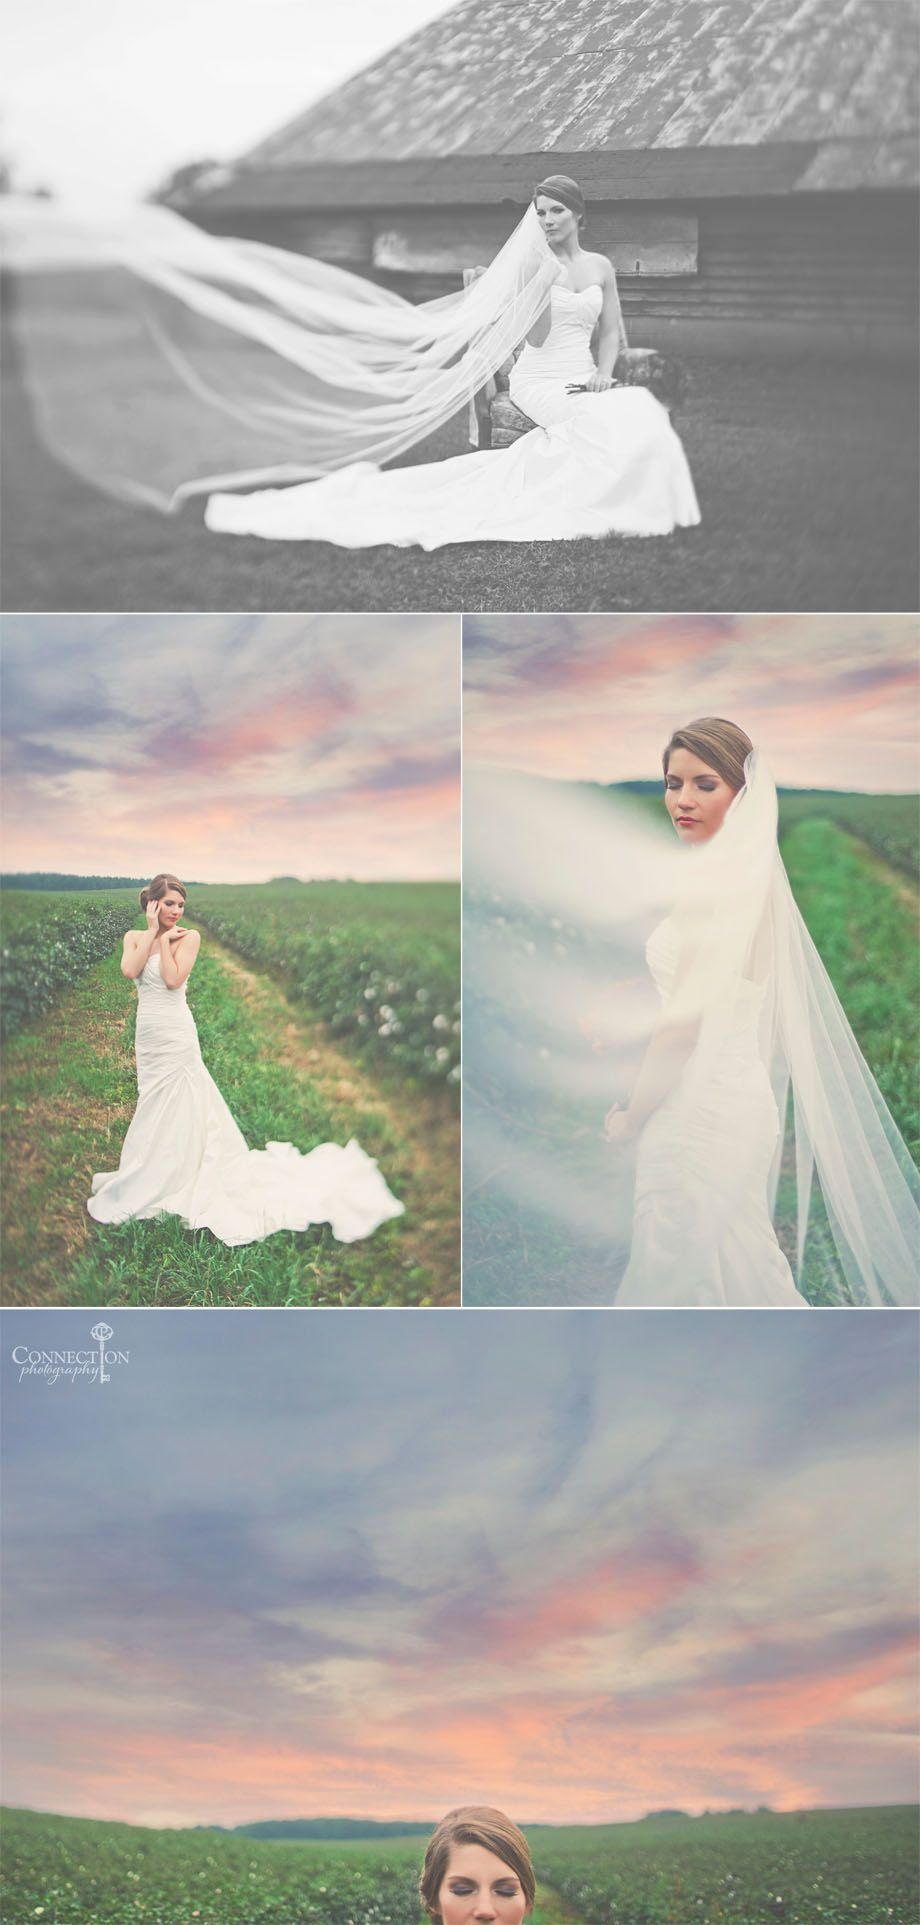 Whirlwind {Creative Wedding Photography} » Connection Photography Blog–Traveling Wedding Photography